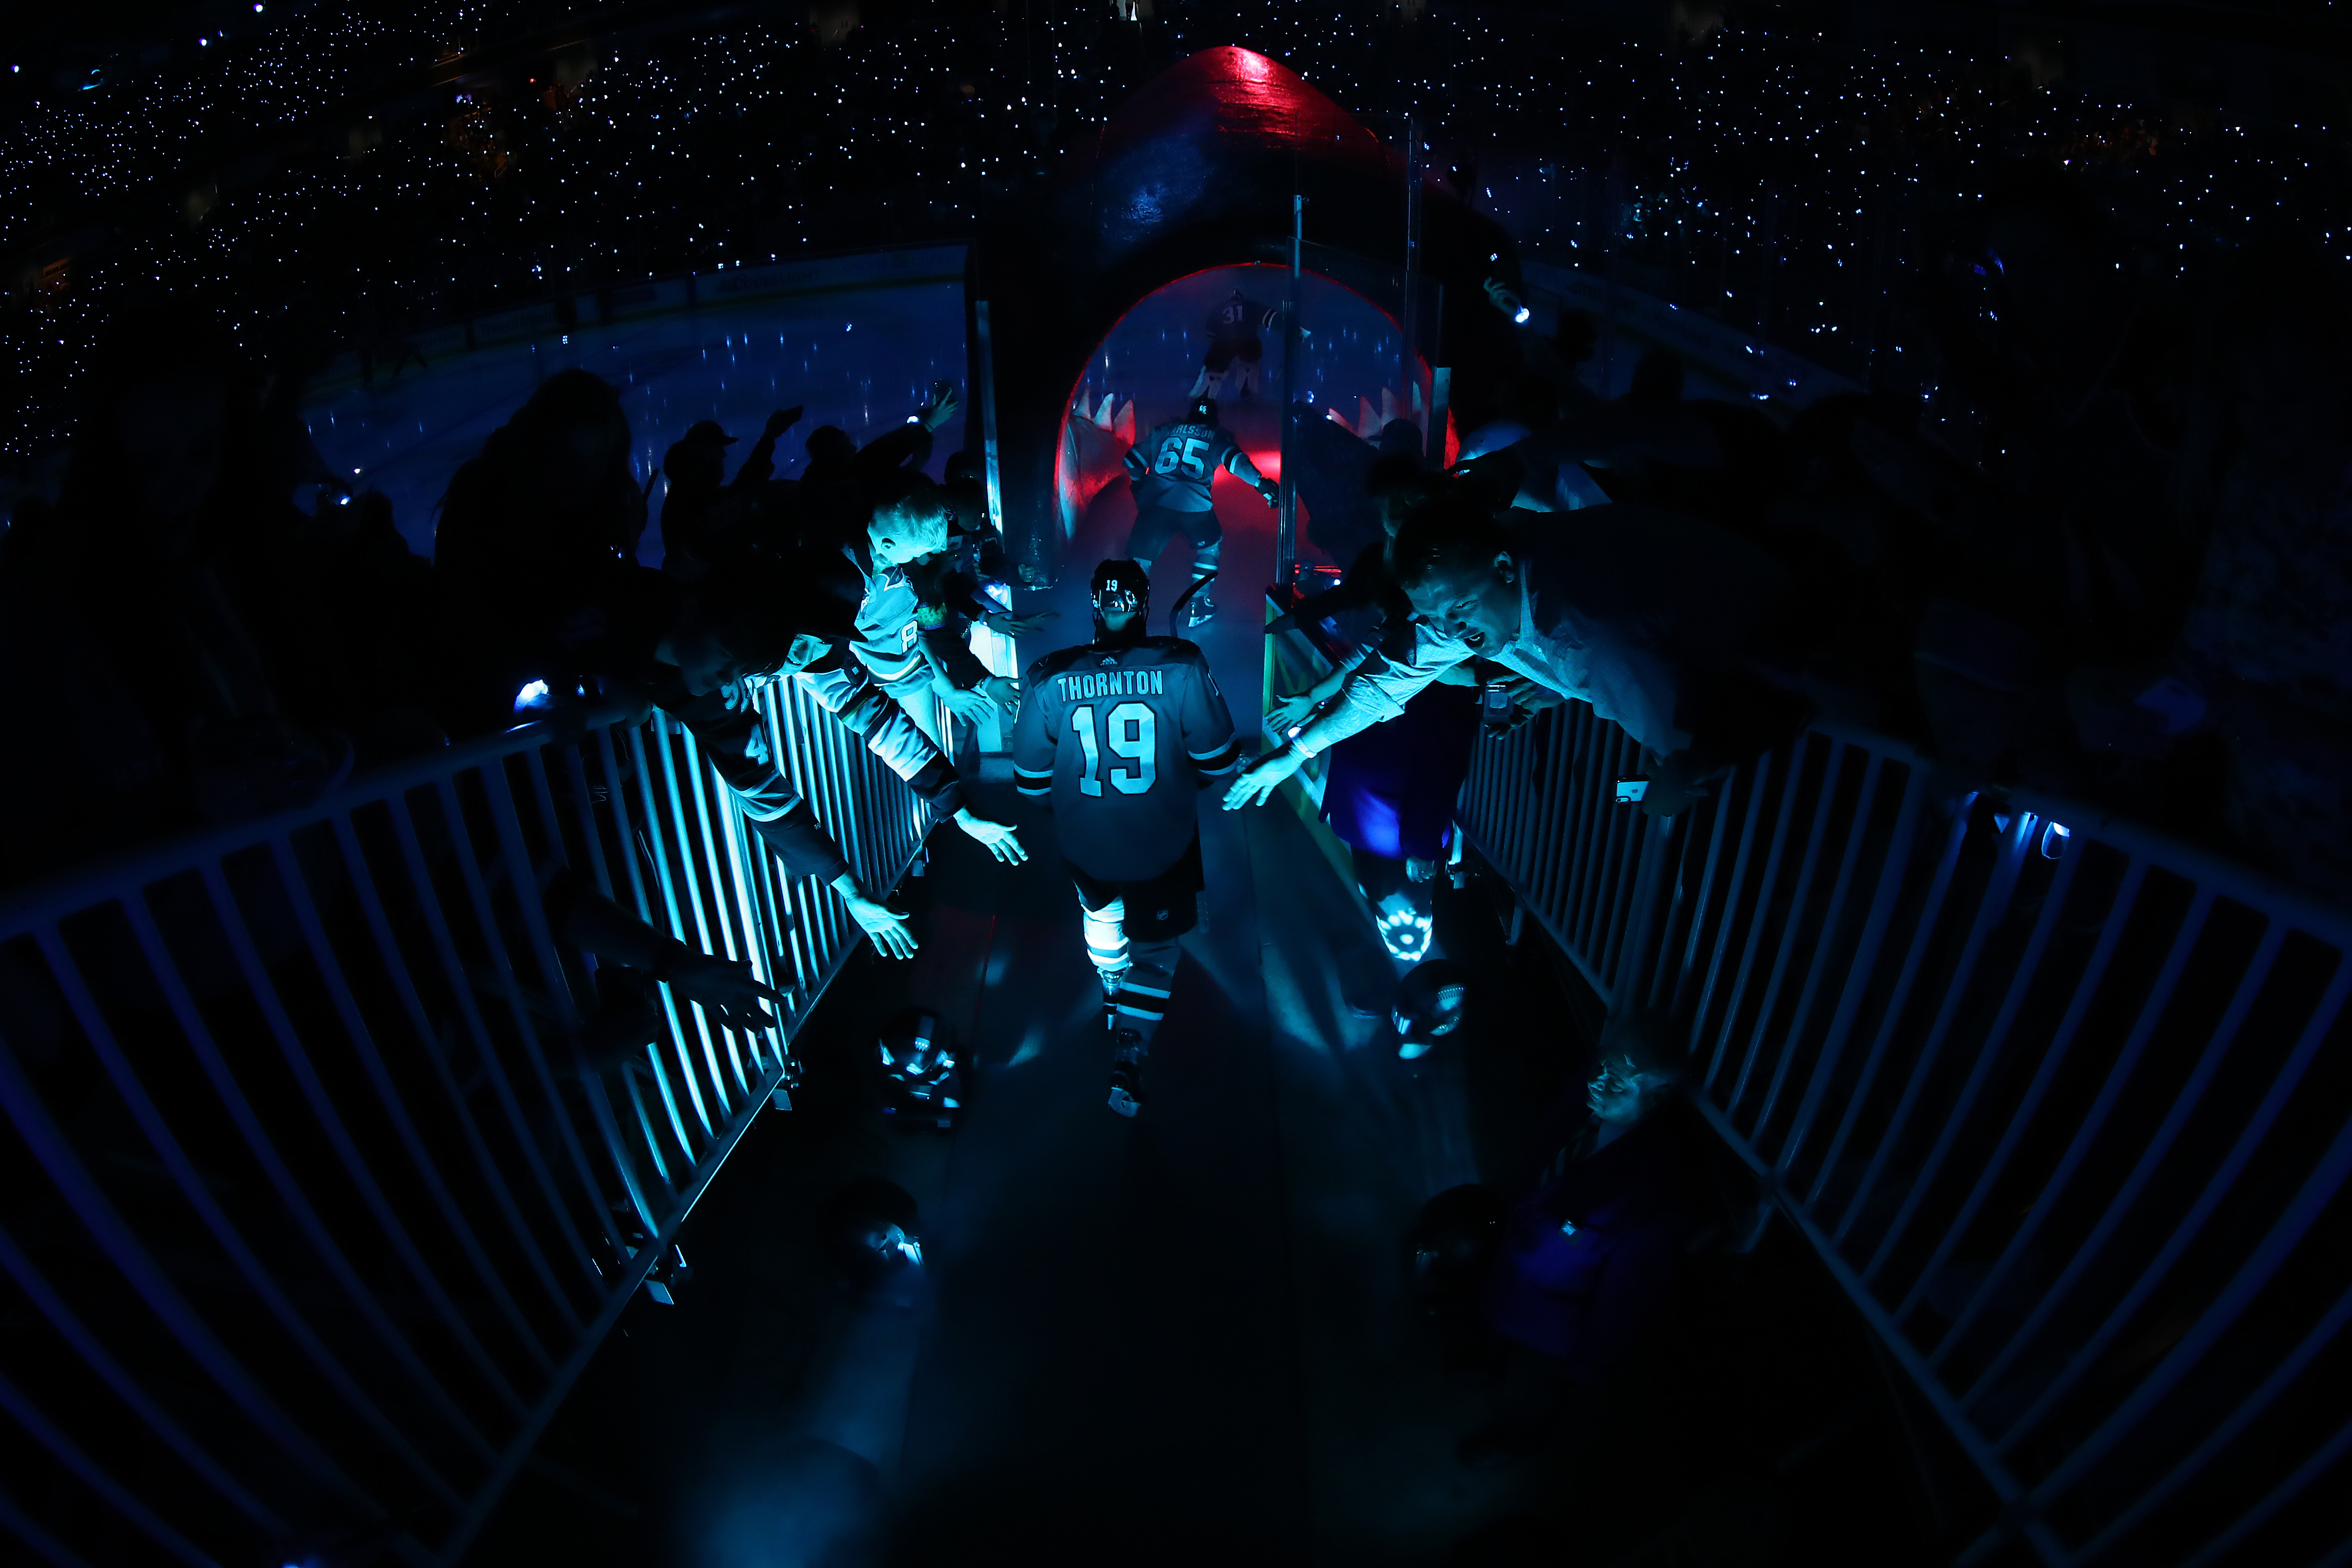 Joe Thornton of the San Jose Sharks takes the ice for Game 2 of the Western Conference Final against the St. Louis Blues during the 2019 NHL Stanley Cup Playoffs at SAP Center on May 13 in San Jose, California.